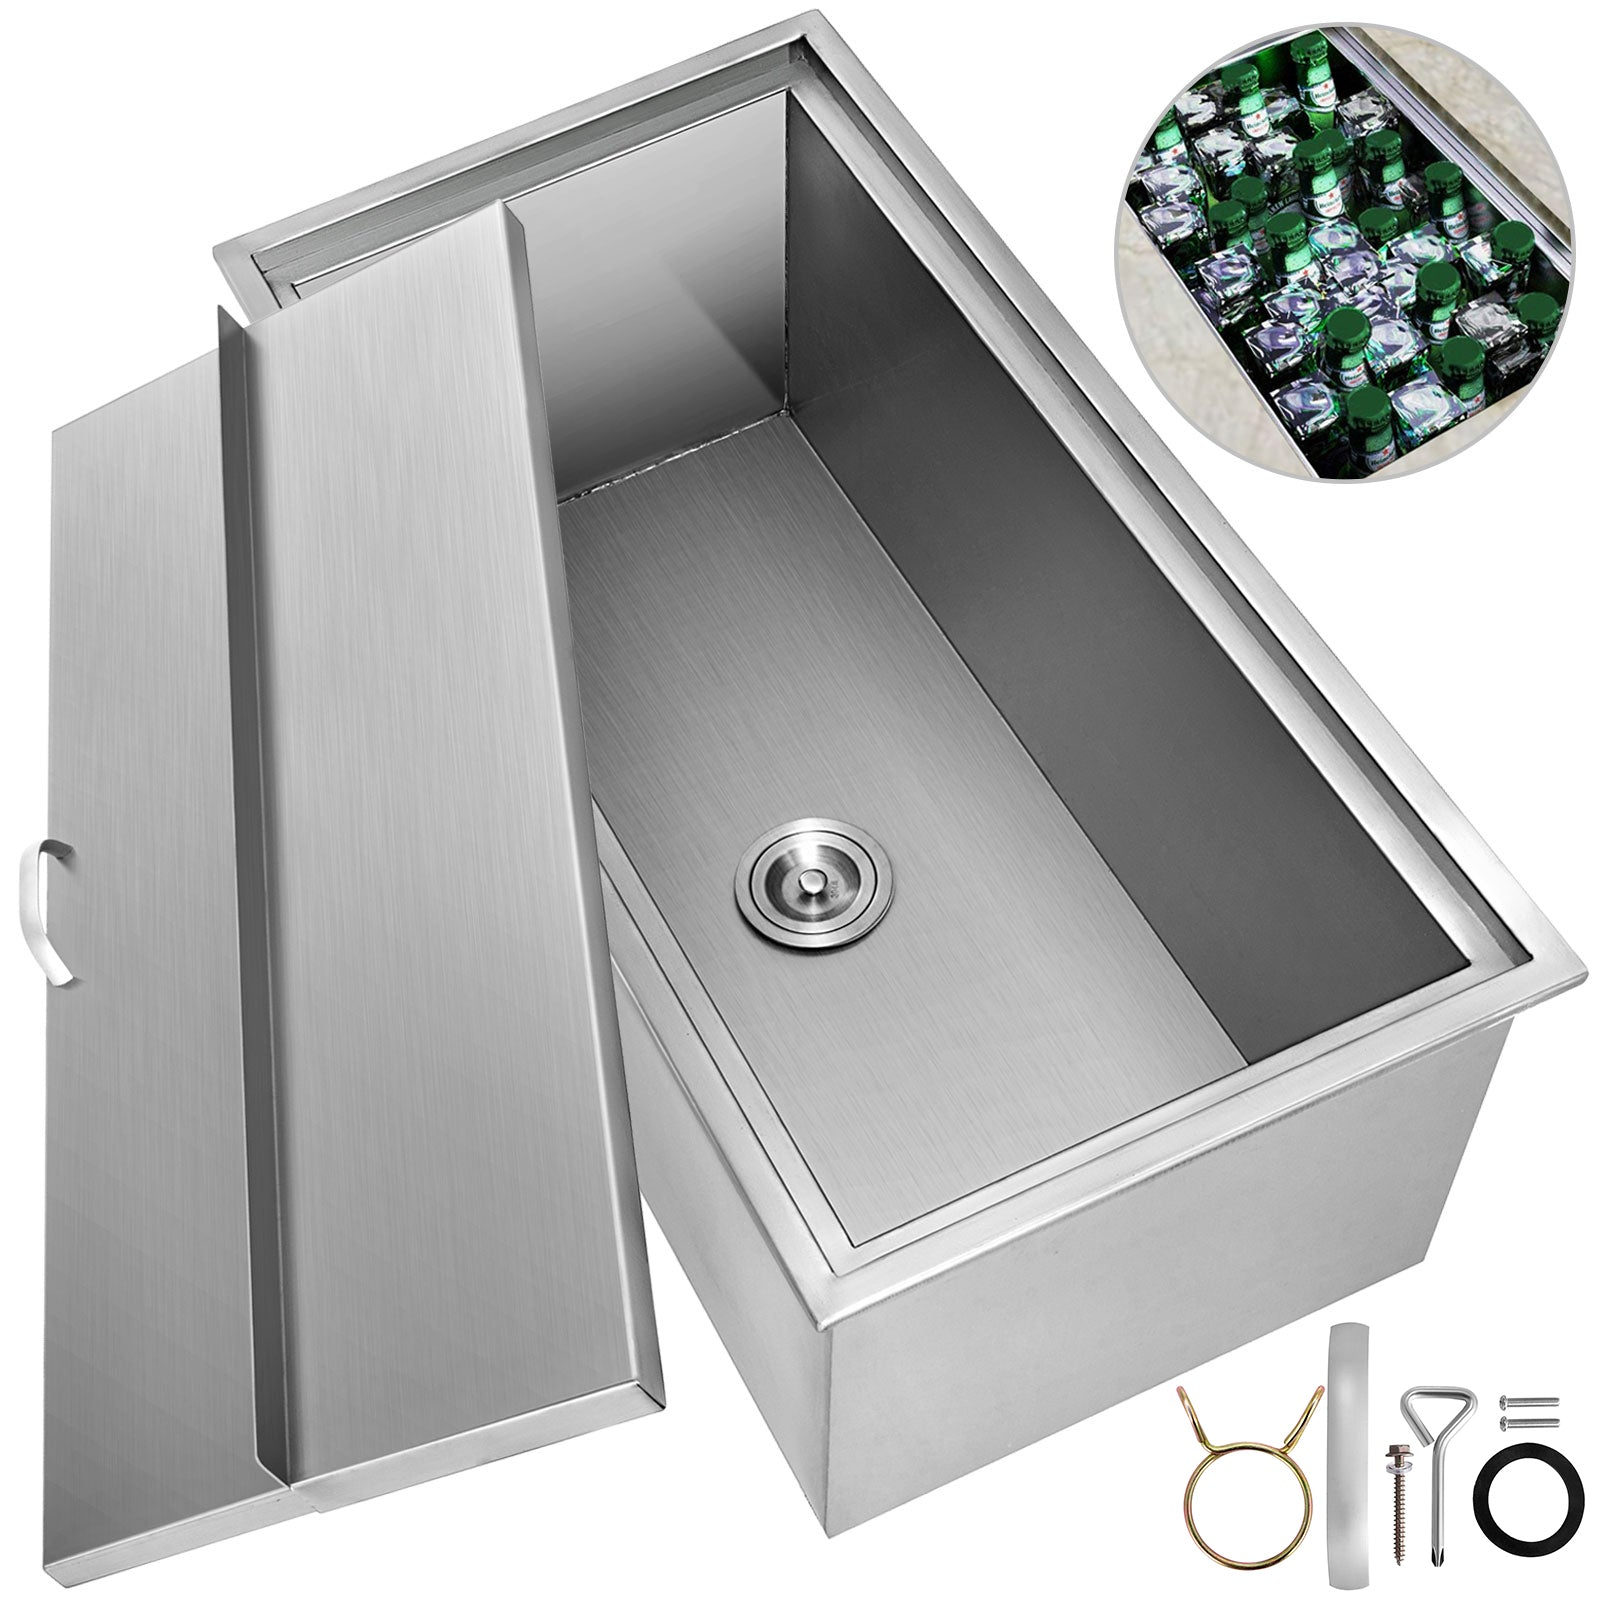 91*45 Cm Bbq Island Stainless Steel Drop In Ice Chest/cooler W/drain Valve